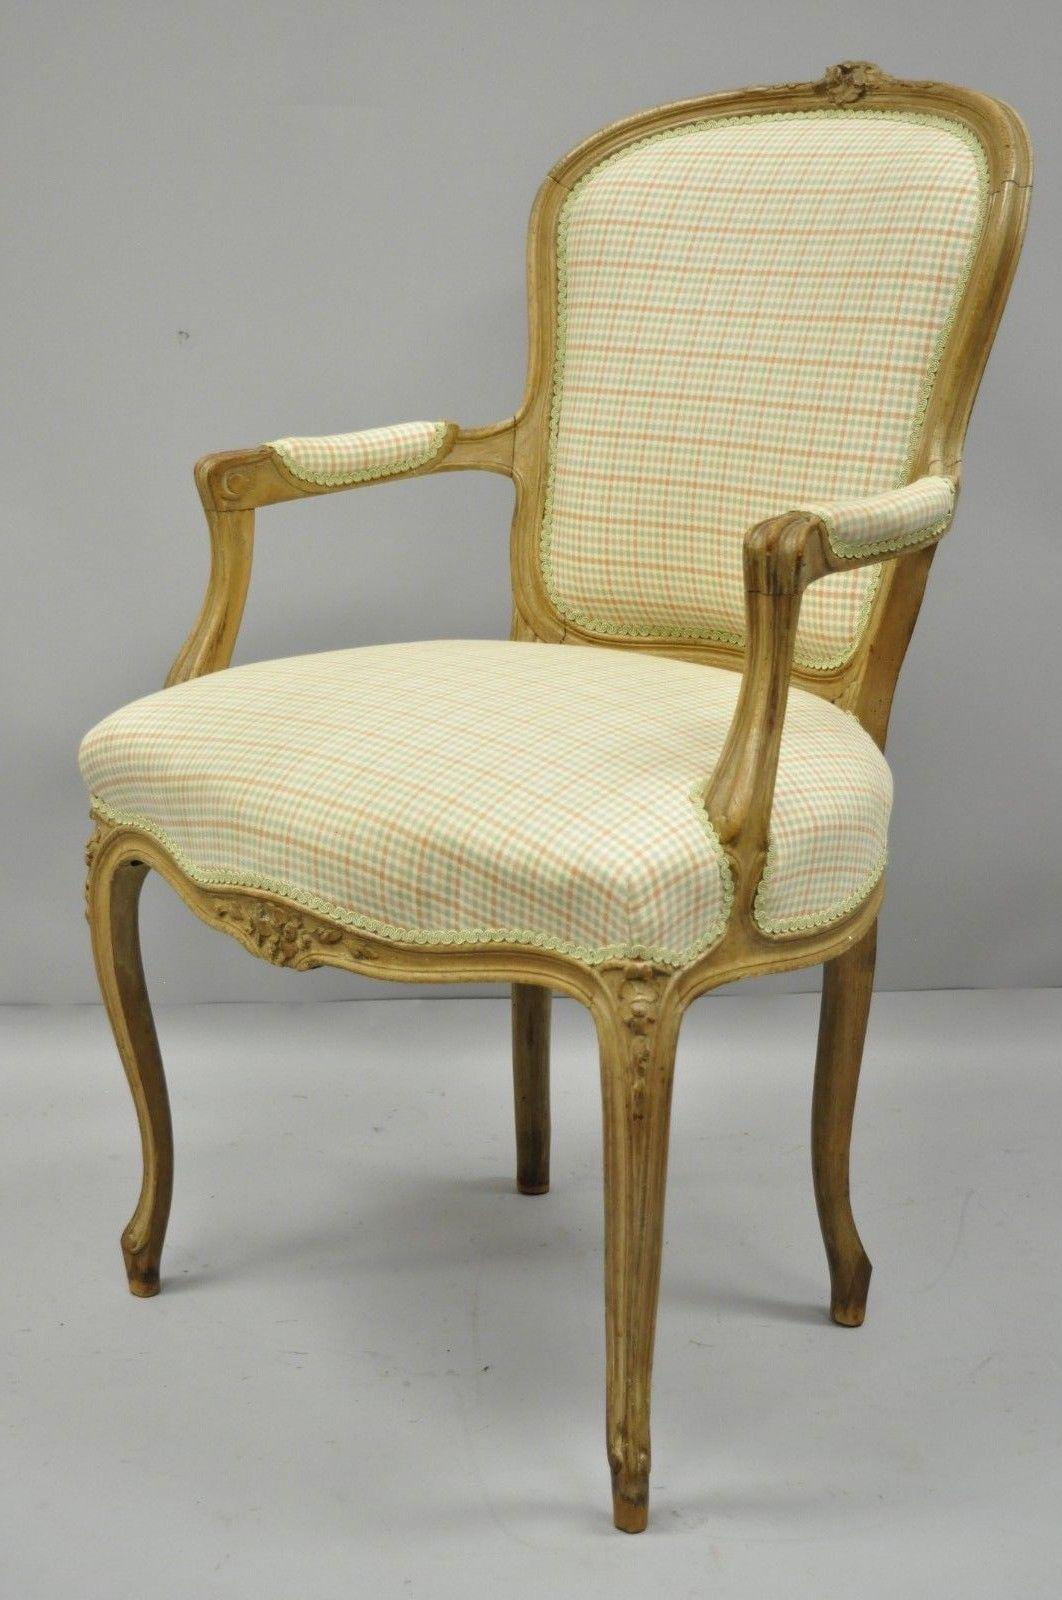 French Country Louis XV Style Armchair Fauteuil Carved Wood Chair B For  Sale   Image 10